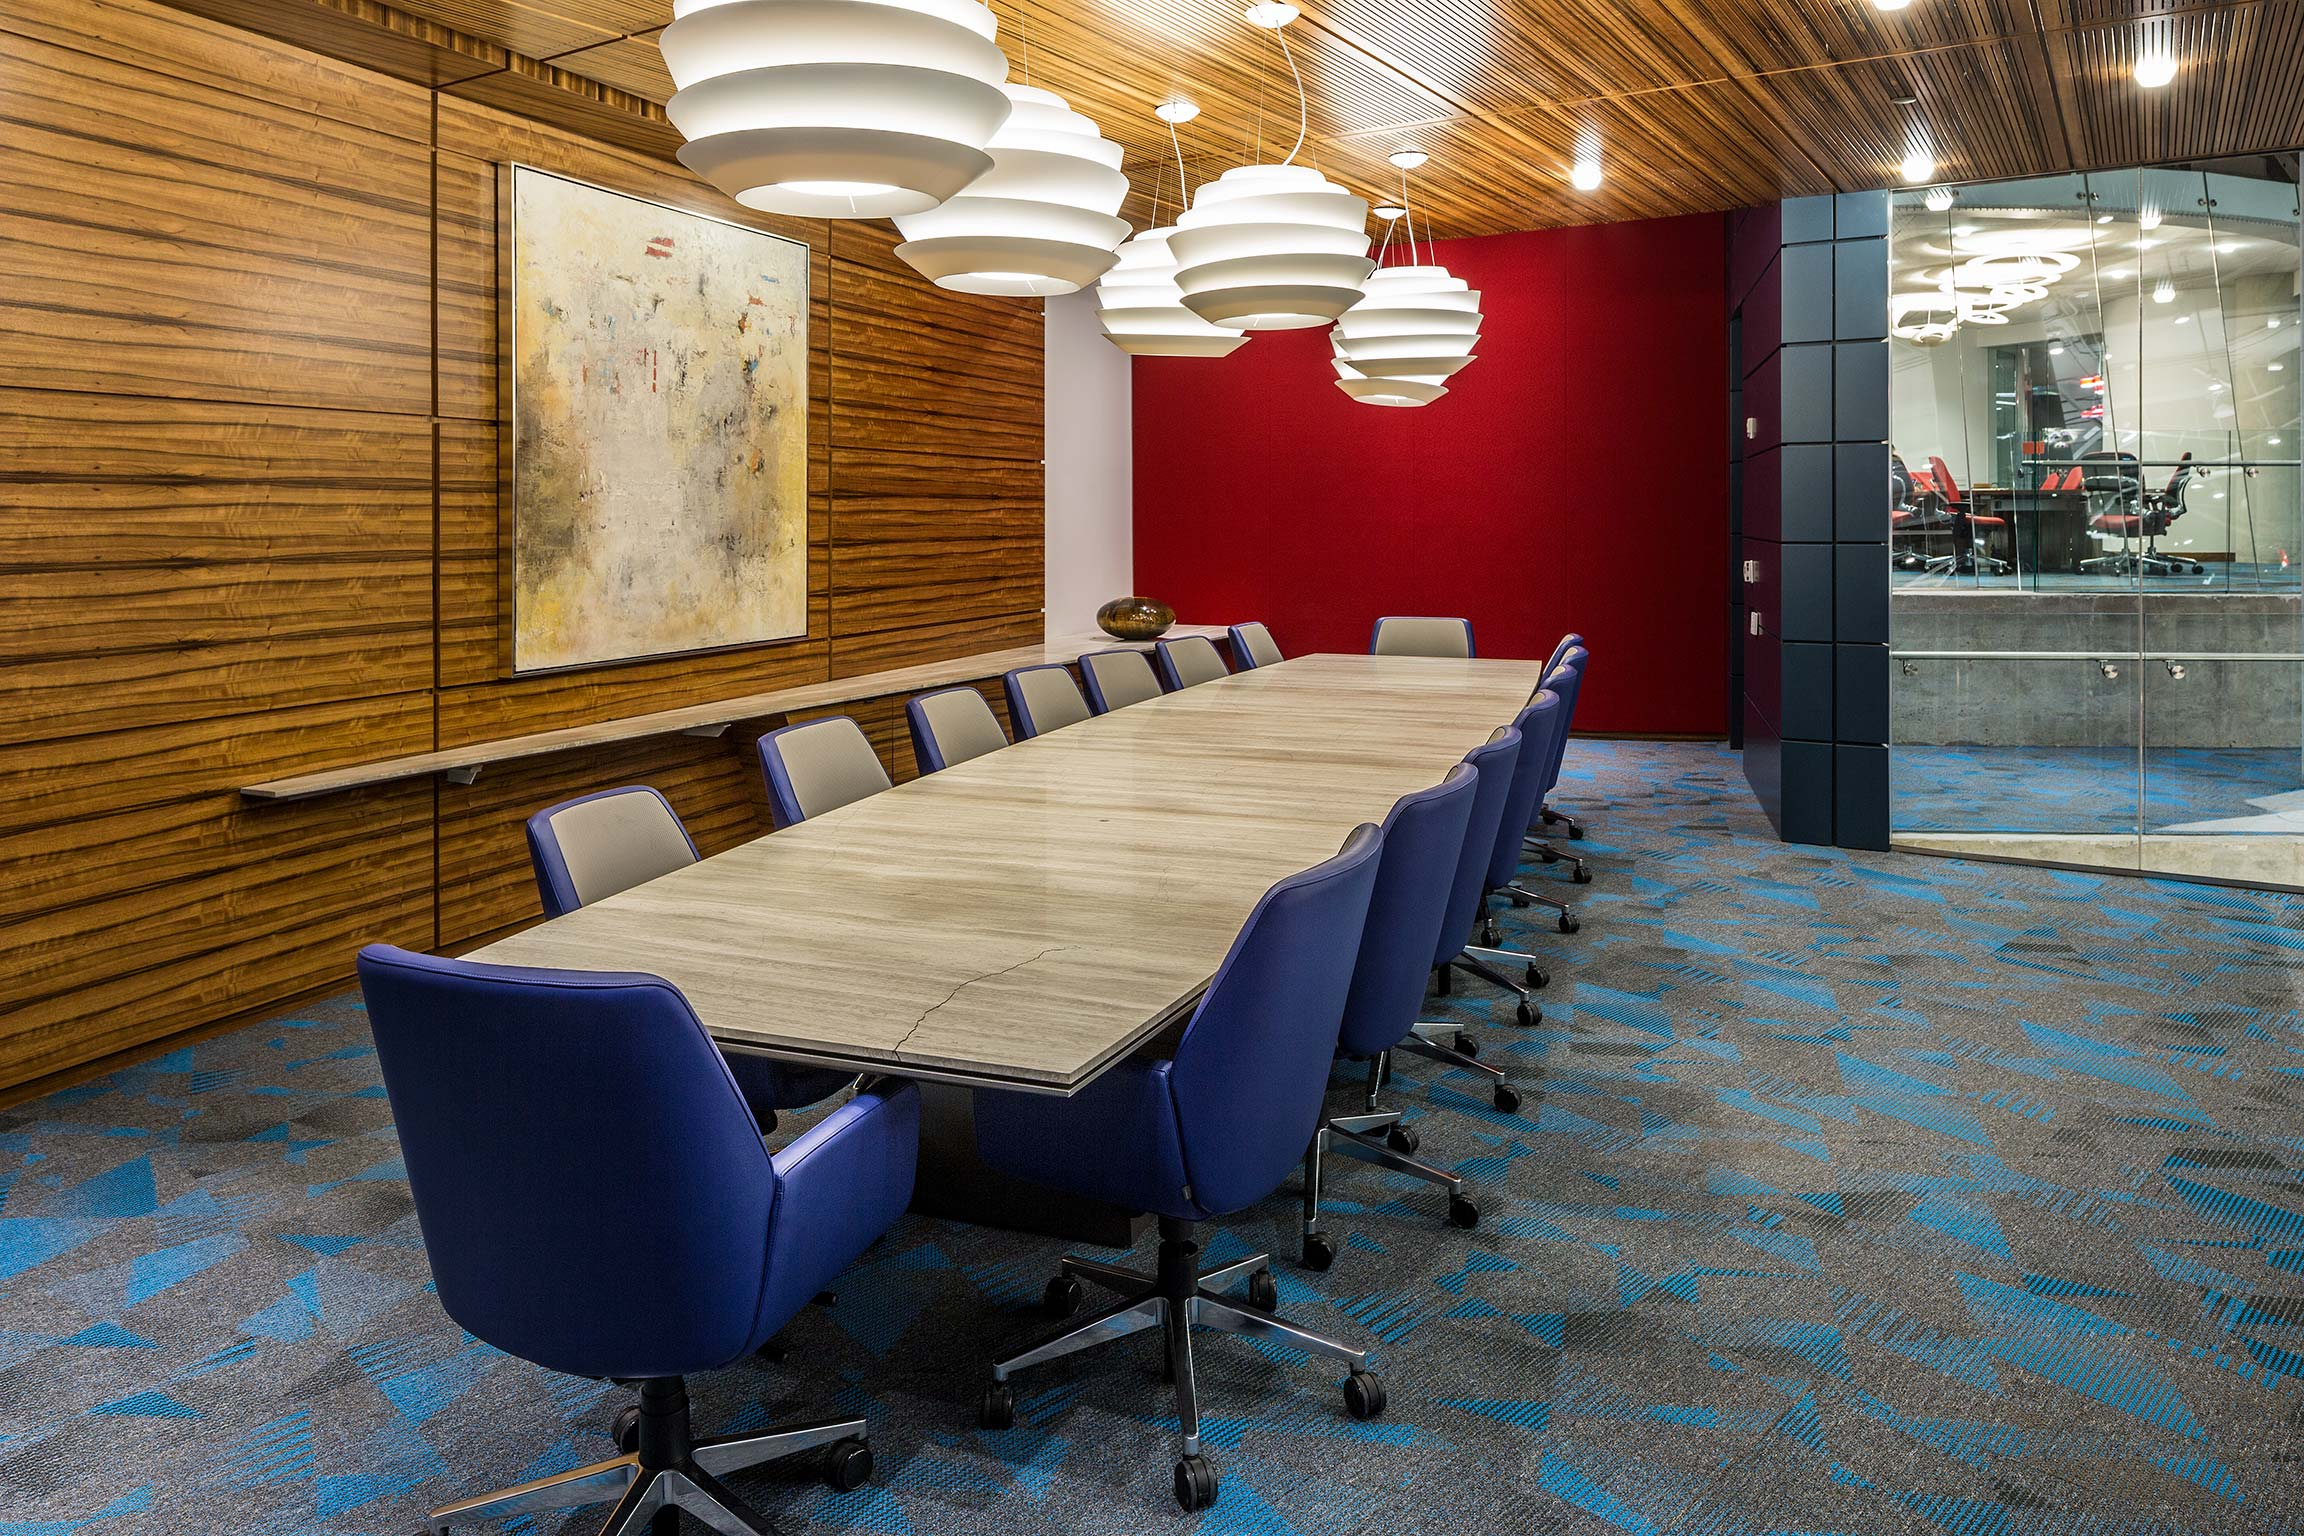 Conference room inside Intergraph Headquarters